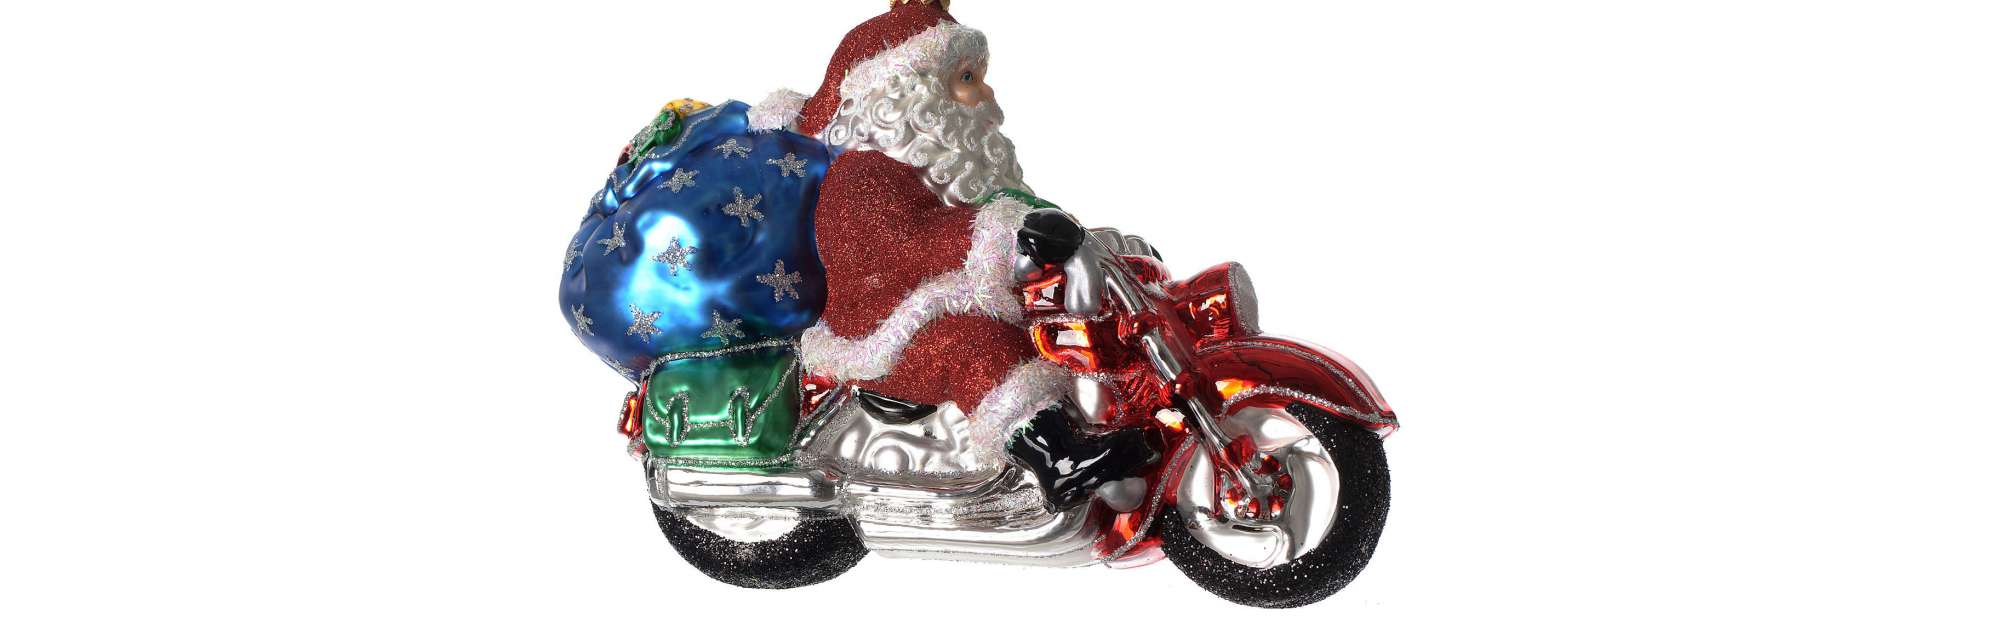 Santa clause motorcycle long